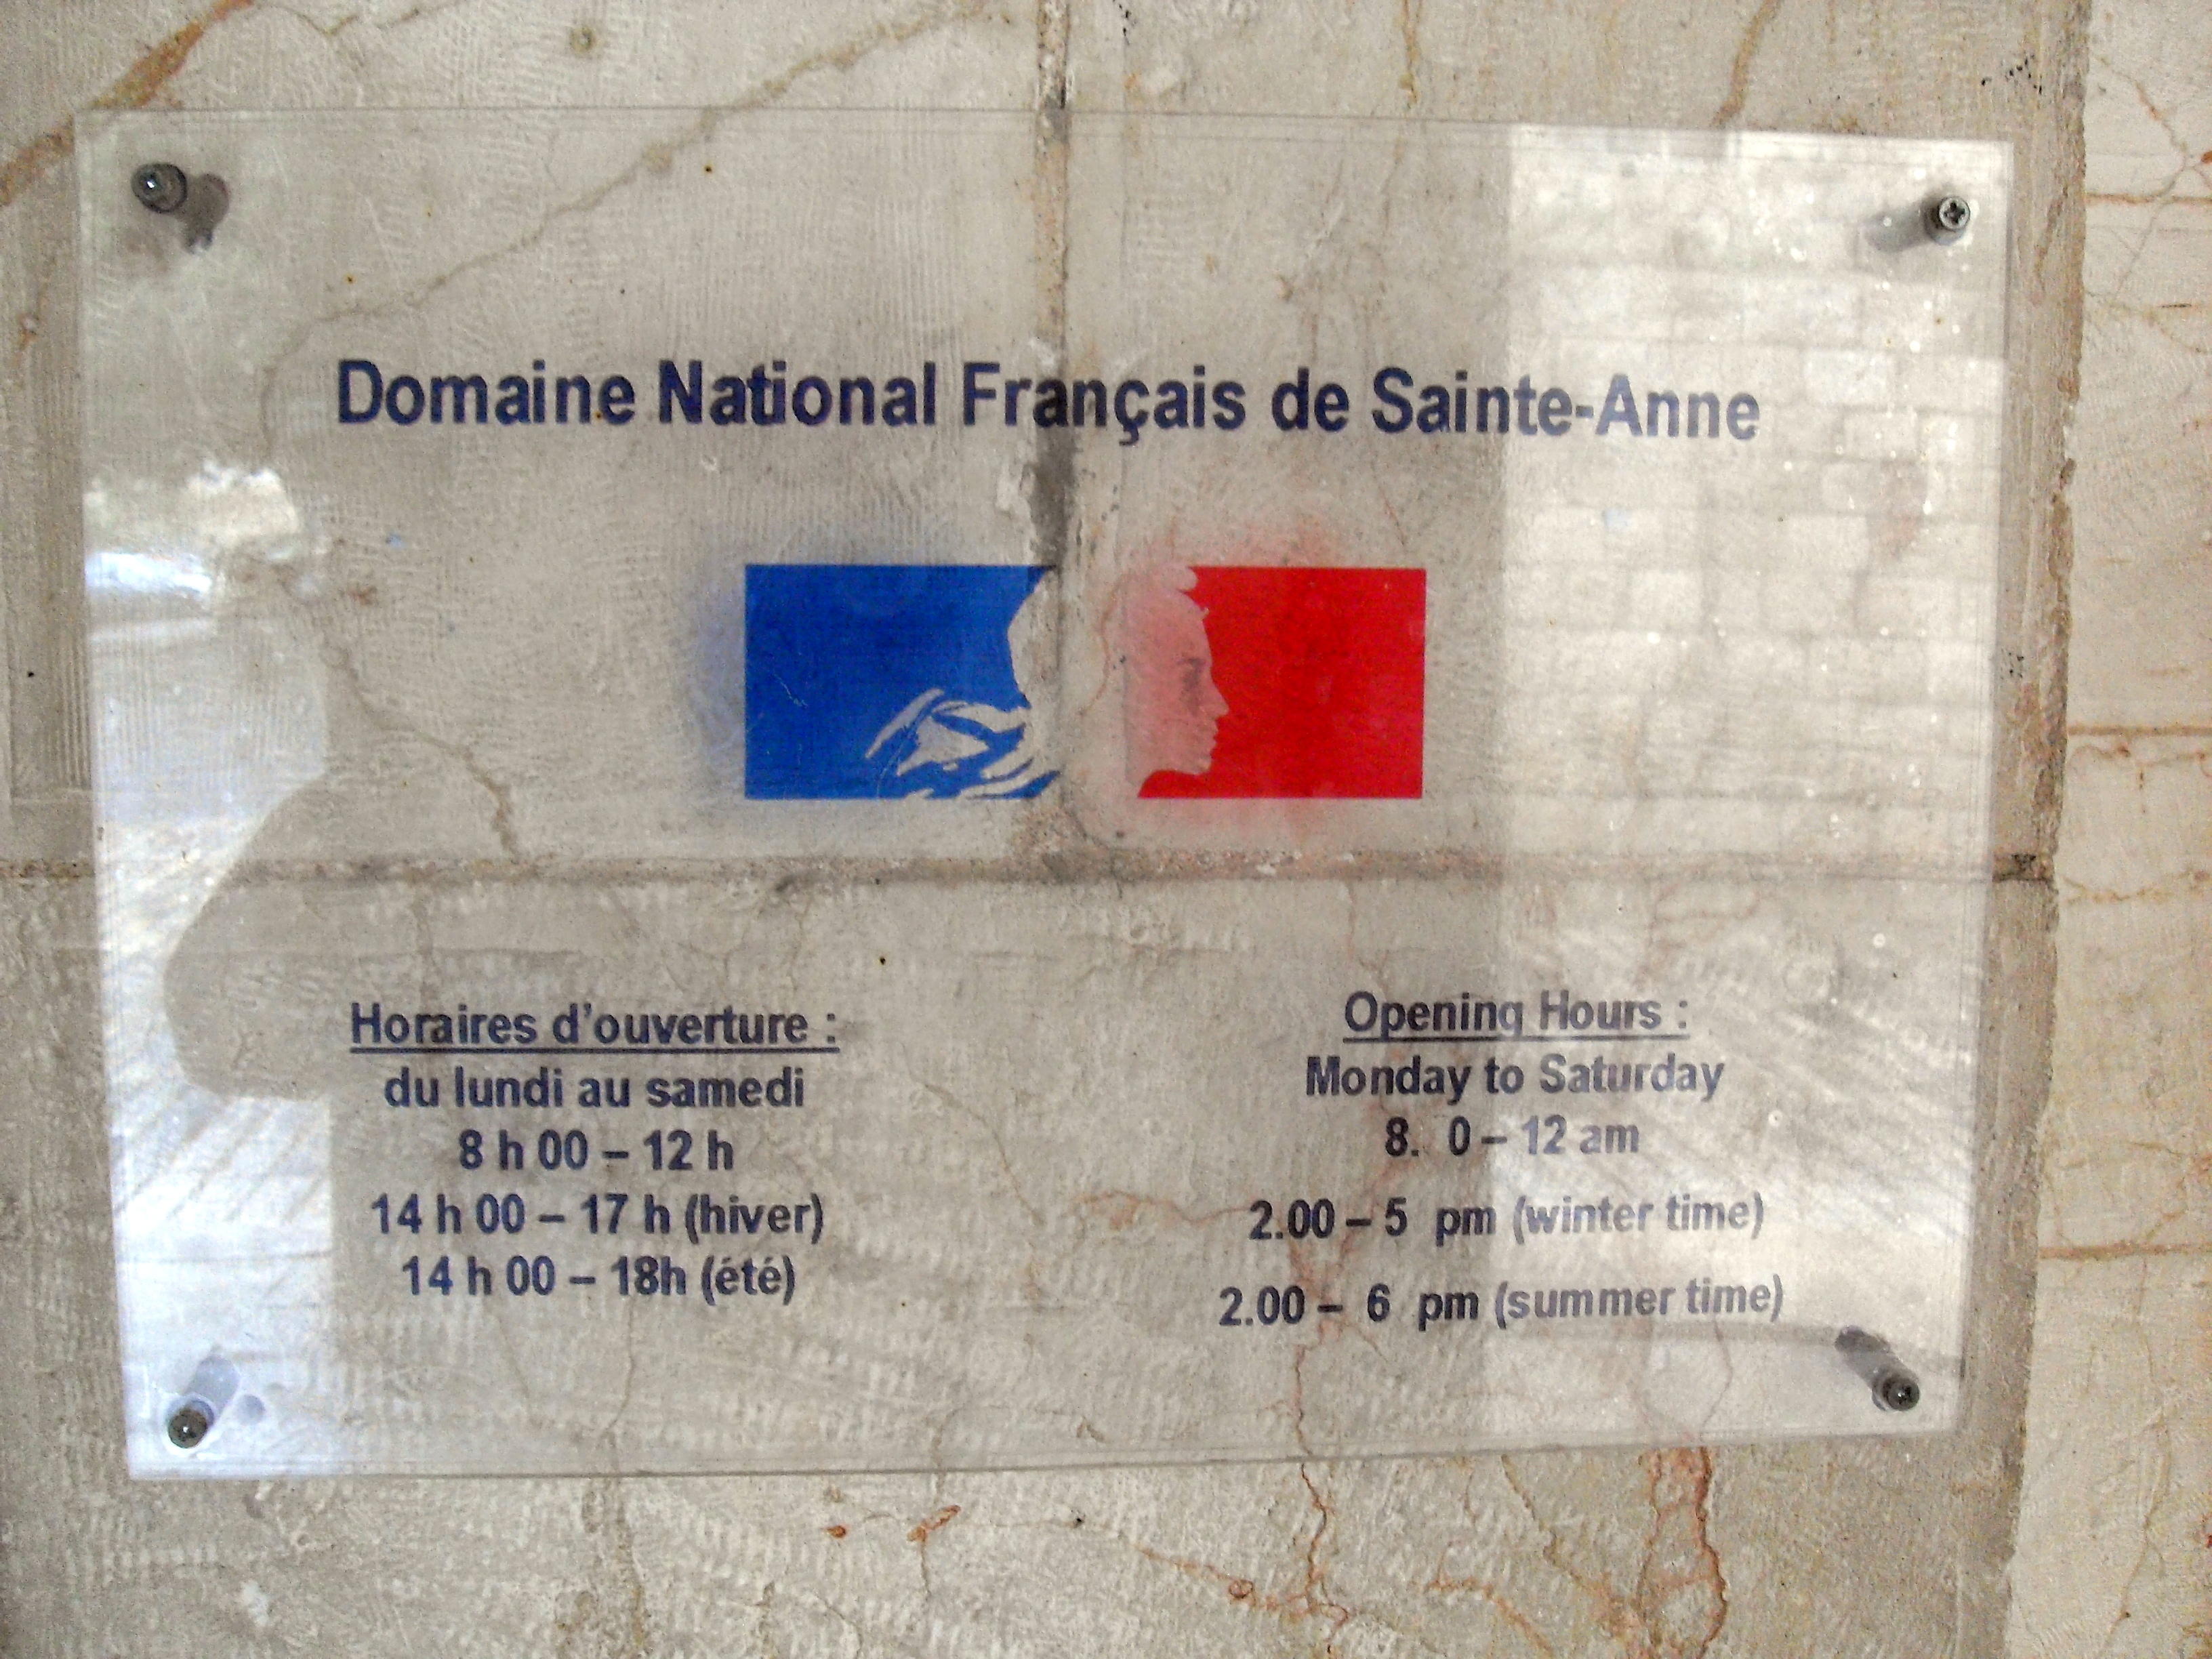 https://i0.wp.com/upload.wikimedia.org/wikipedia/commons/3/3b/Old_Jerusalem_Domaine_National_Fran%C3%A7ais_de_Saint-Anne_sign.jpg